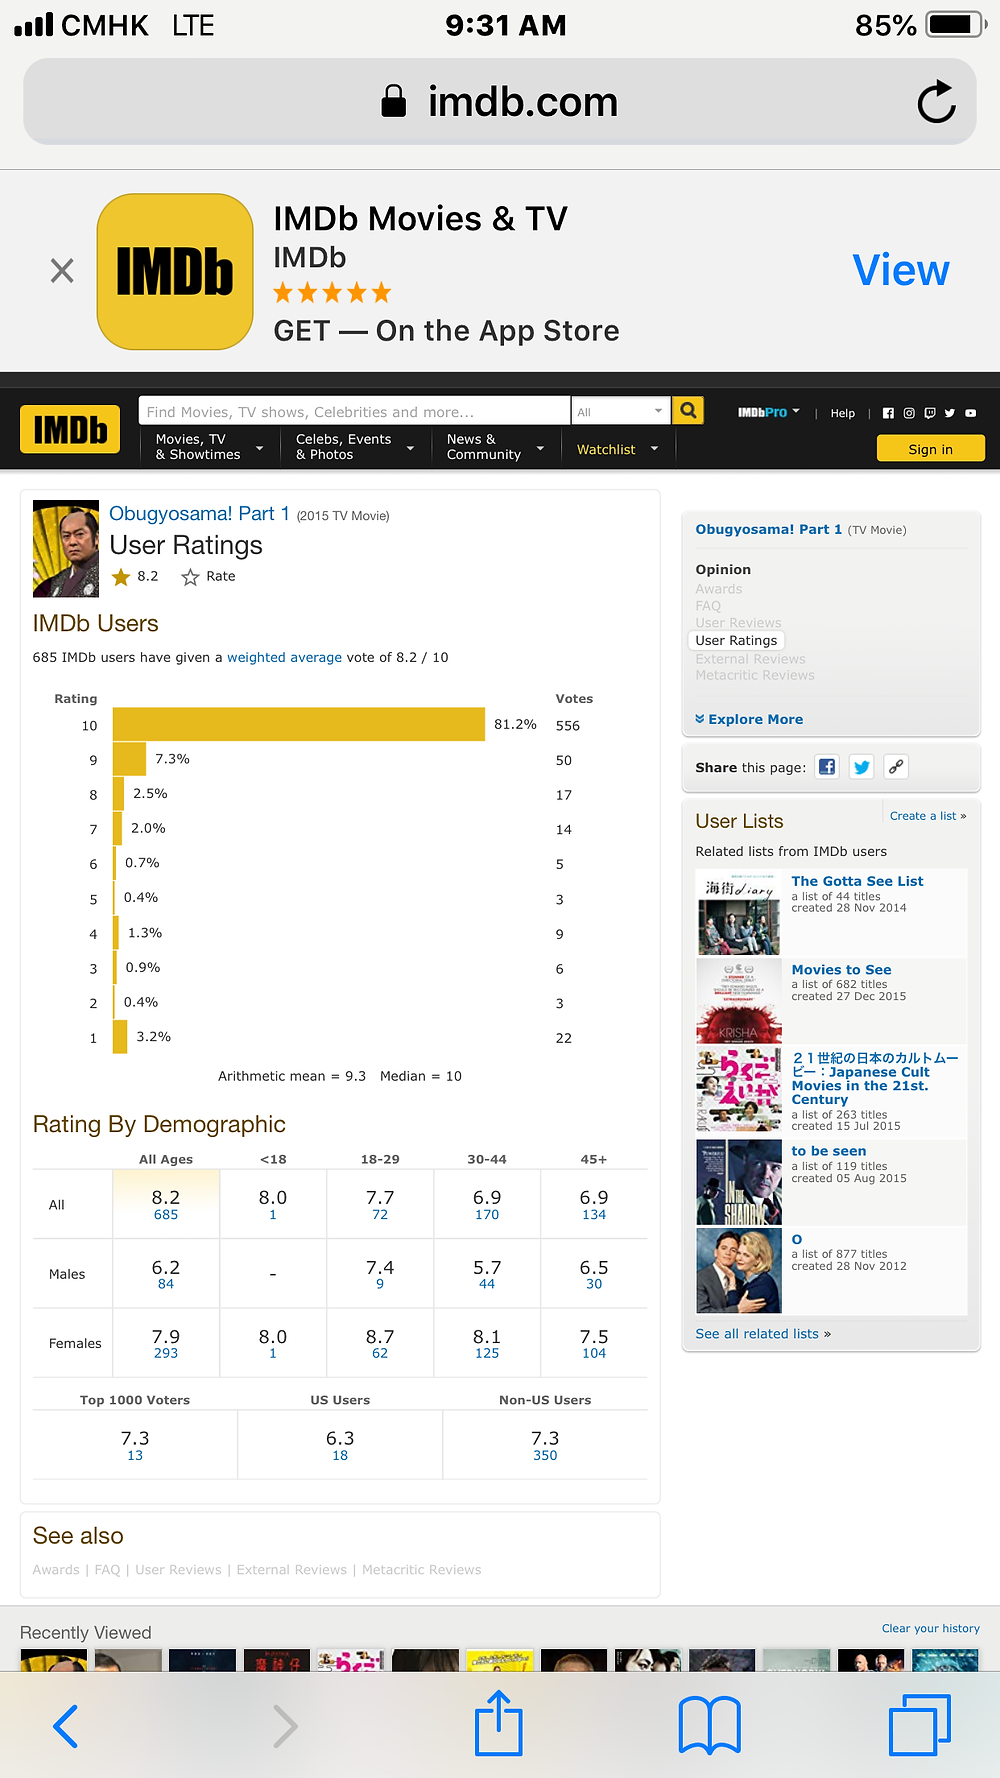 At 9:31 am (China), Aug.9 2019 685 IMDb users voted 8.2 / 10; Top 1000 users voted 7.3; US users voted 6.3; Non US users voted 7.3.